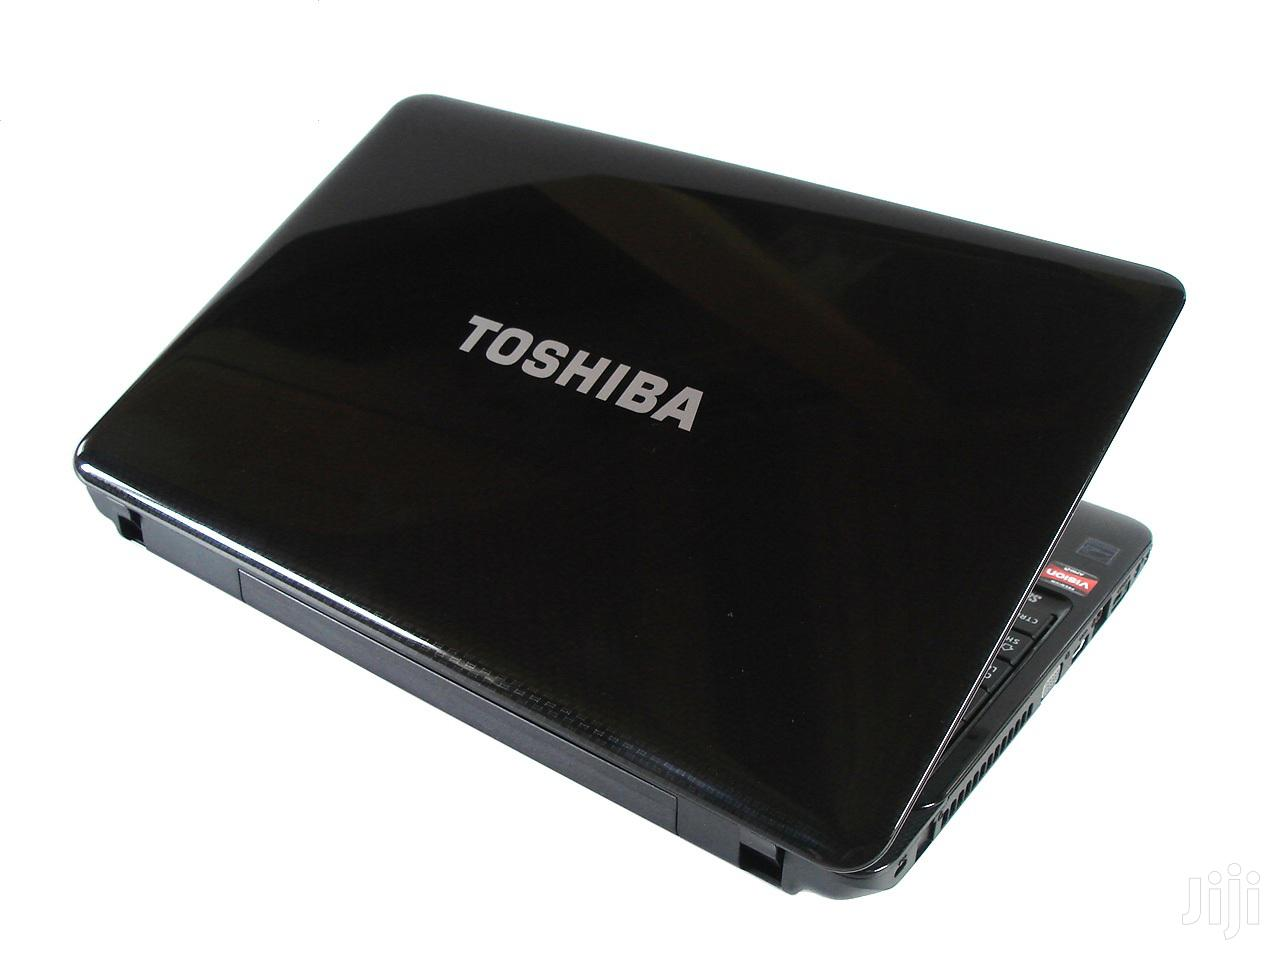 Laptop Toshiba Satellite C850 4GB Intel Core i3 HDD 320GB | Laptops & Computers for sale in Kampala, Central Region, Uganda